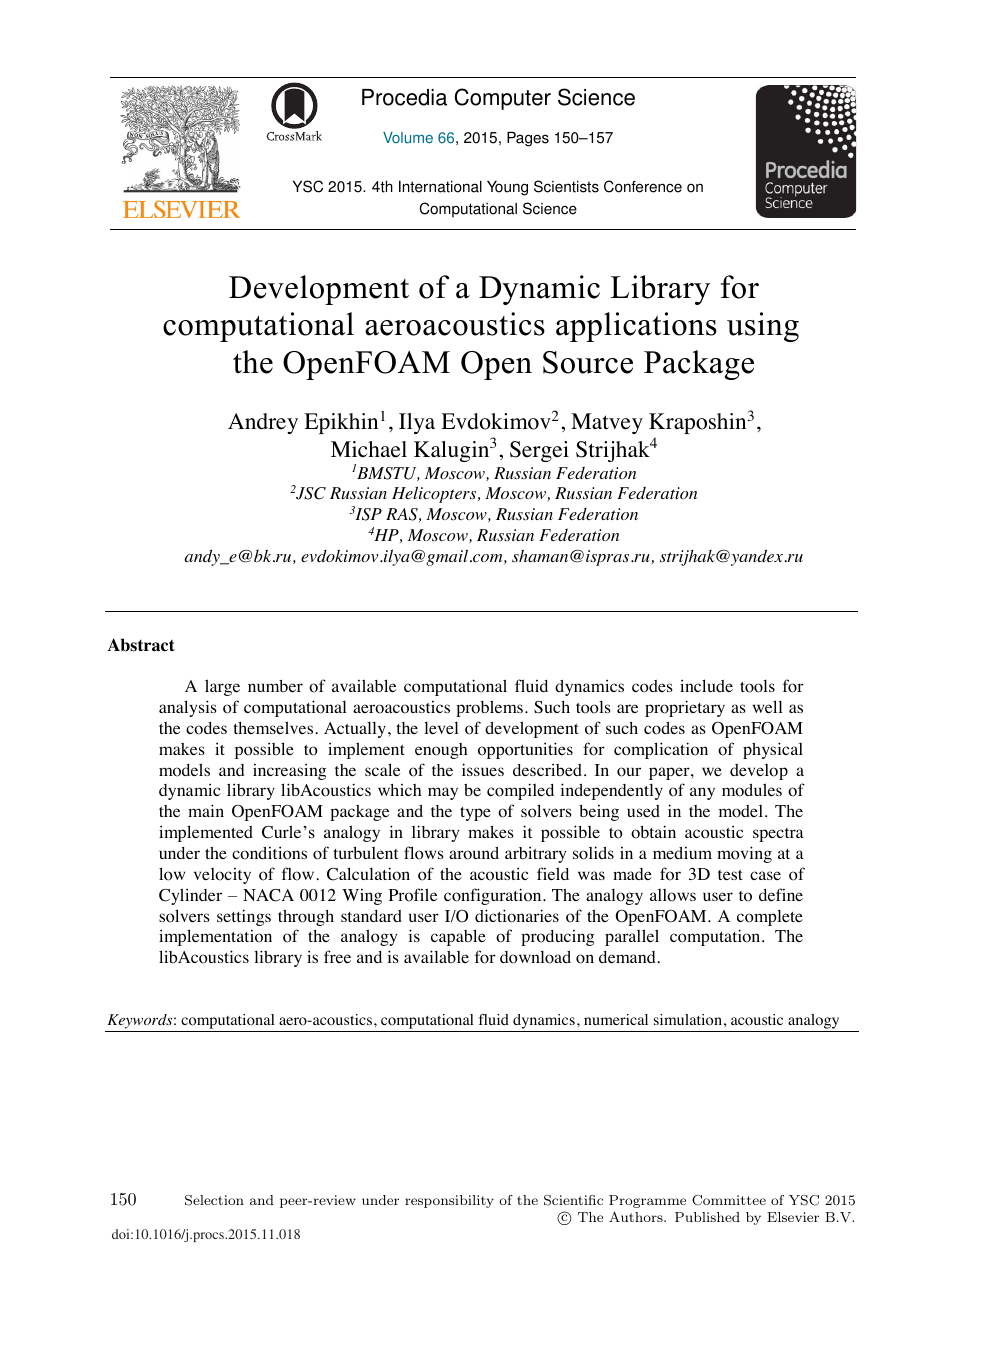 Development of a Dynamic Library for Computational